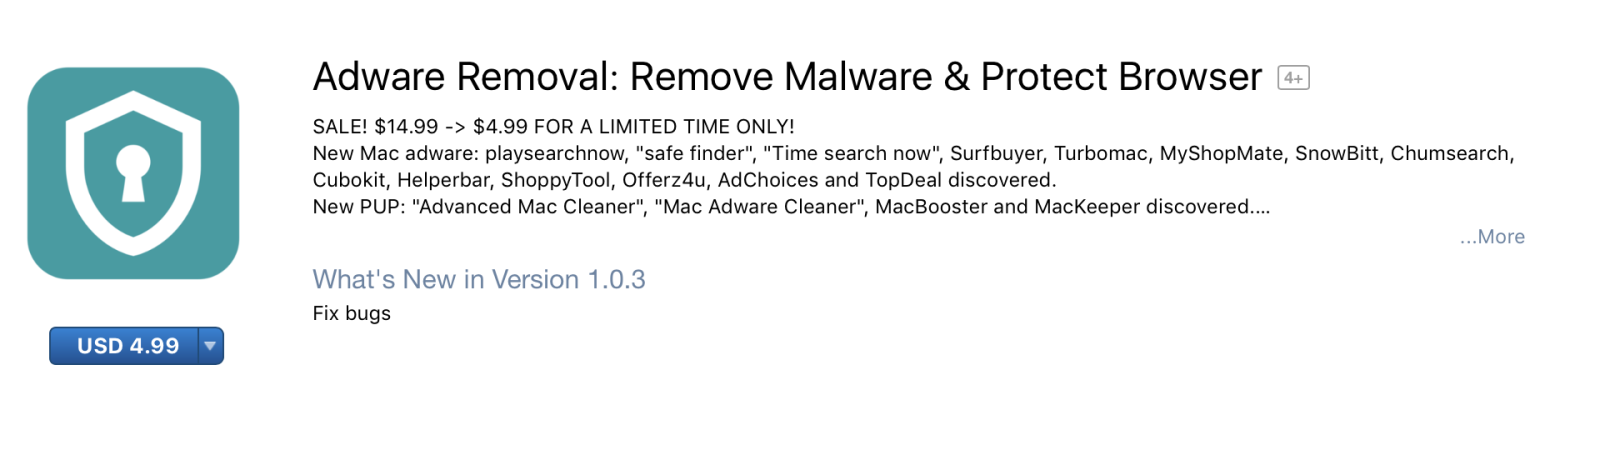 Ứng dụng Adware Removal